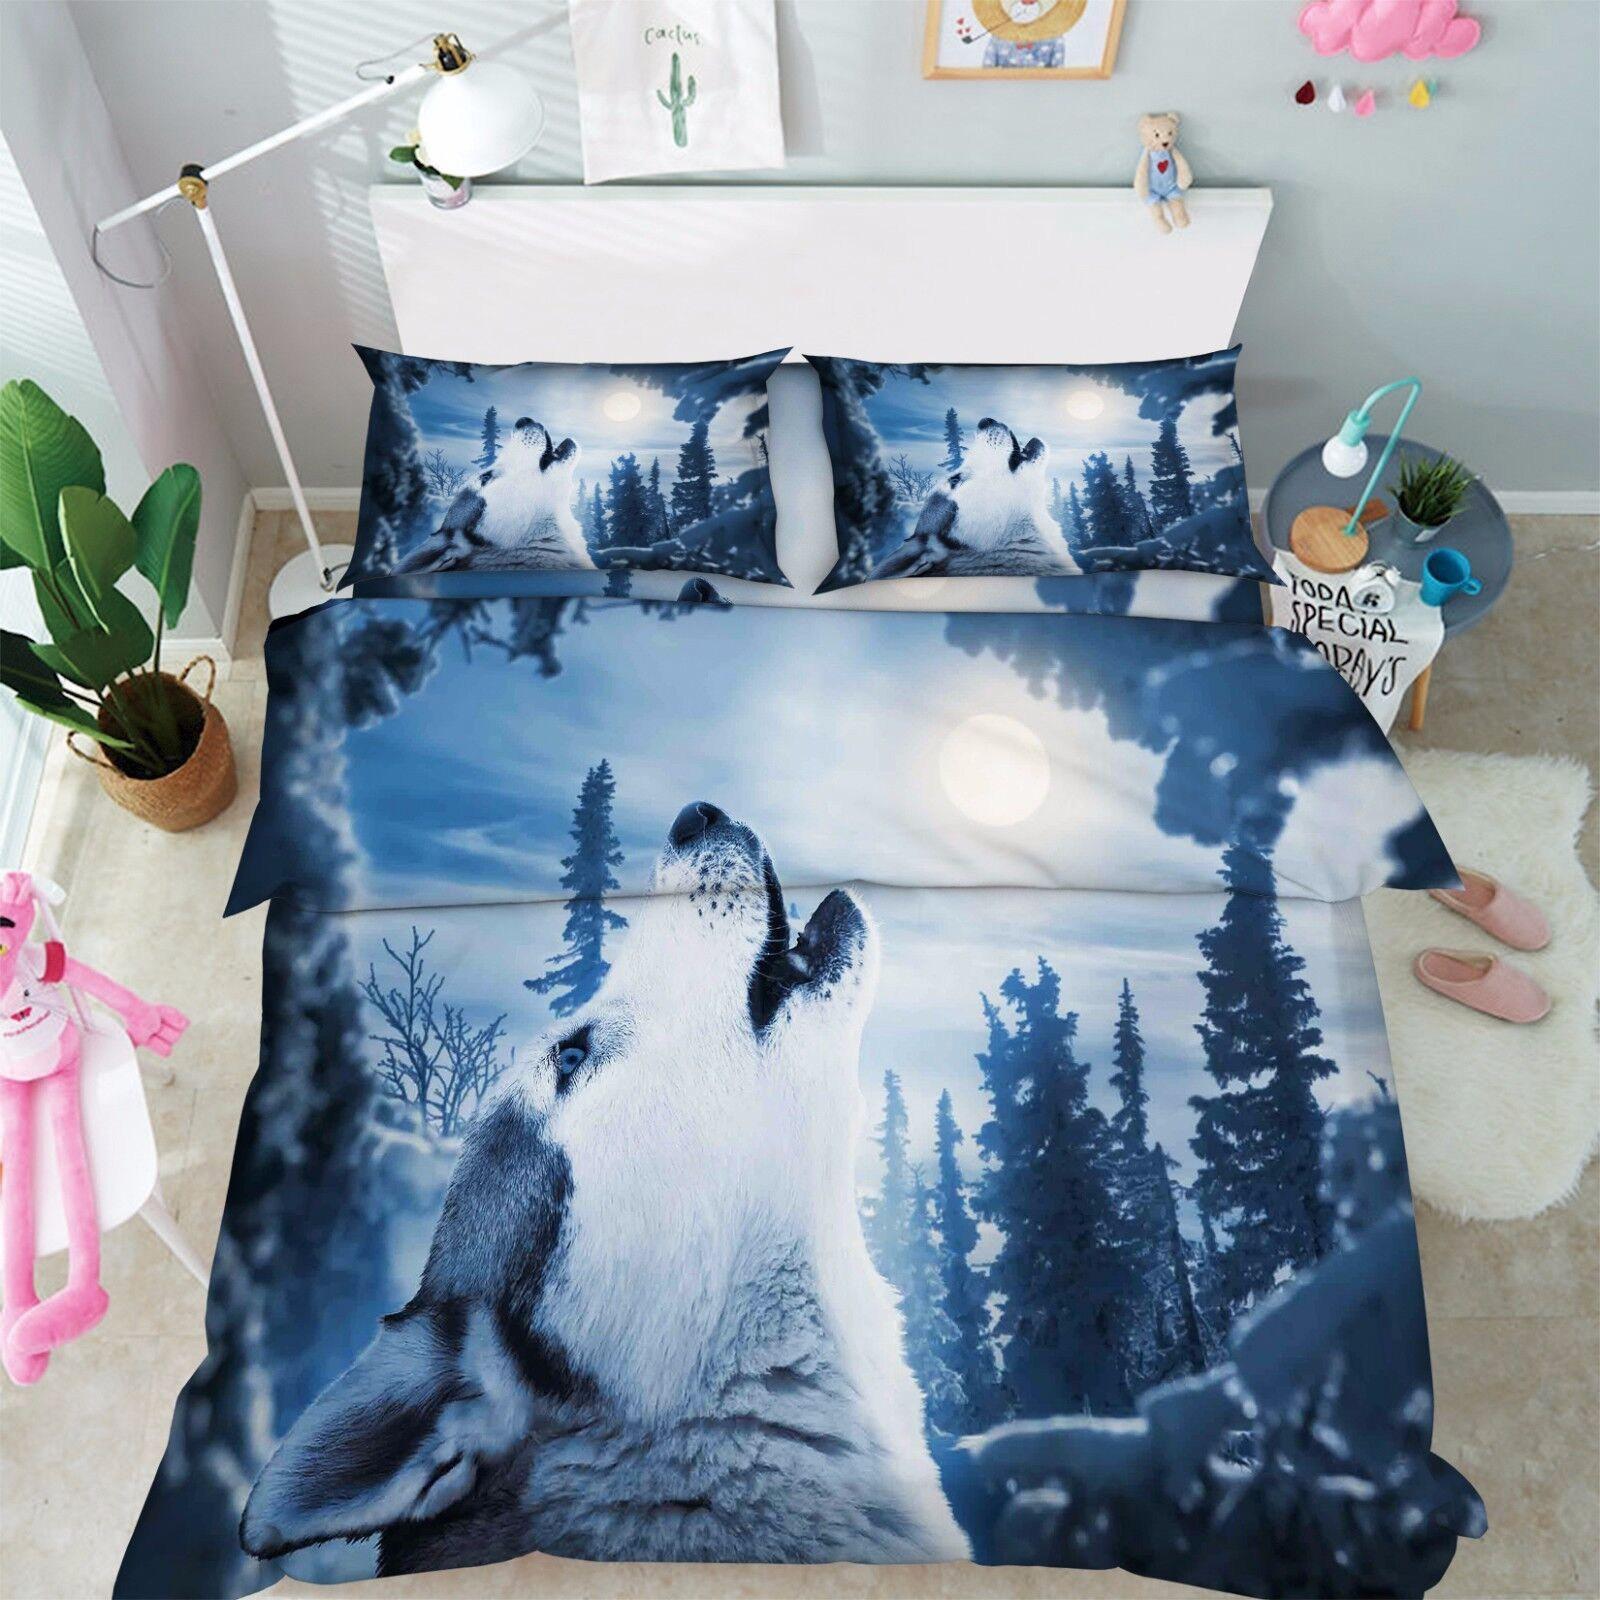 3D Wolf Animal 876 Bed Pillowcases Quilt Duvet Cover Set Single Queen UK Kyra